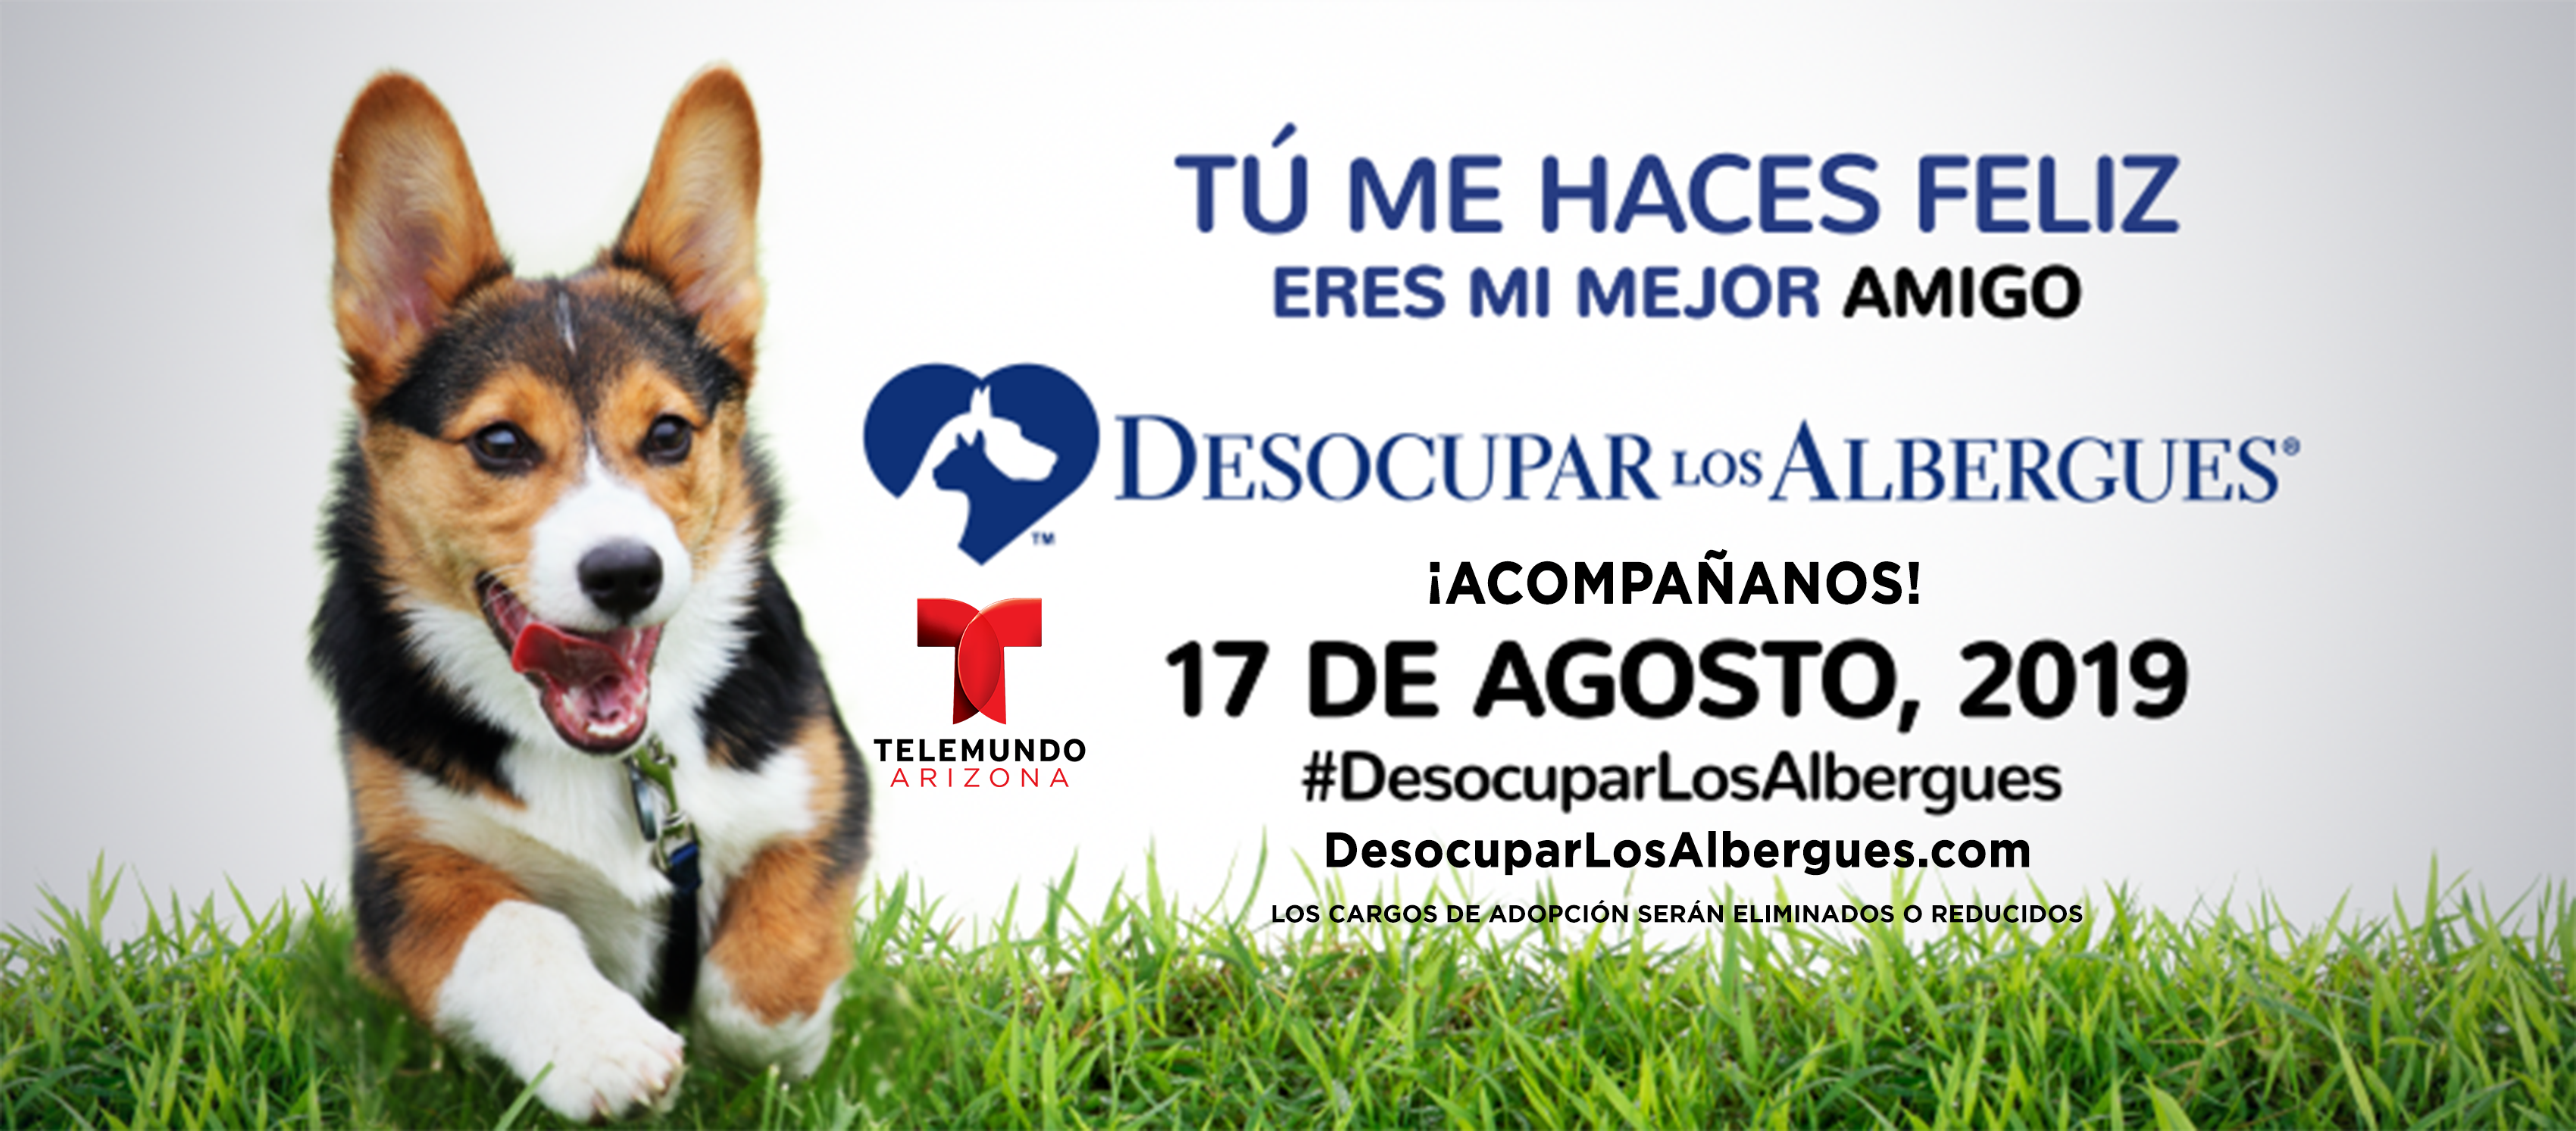 Desocupar Los Albergues  August 17, 2019